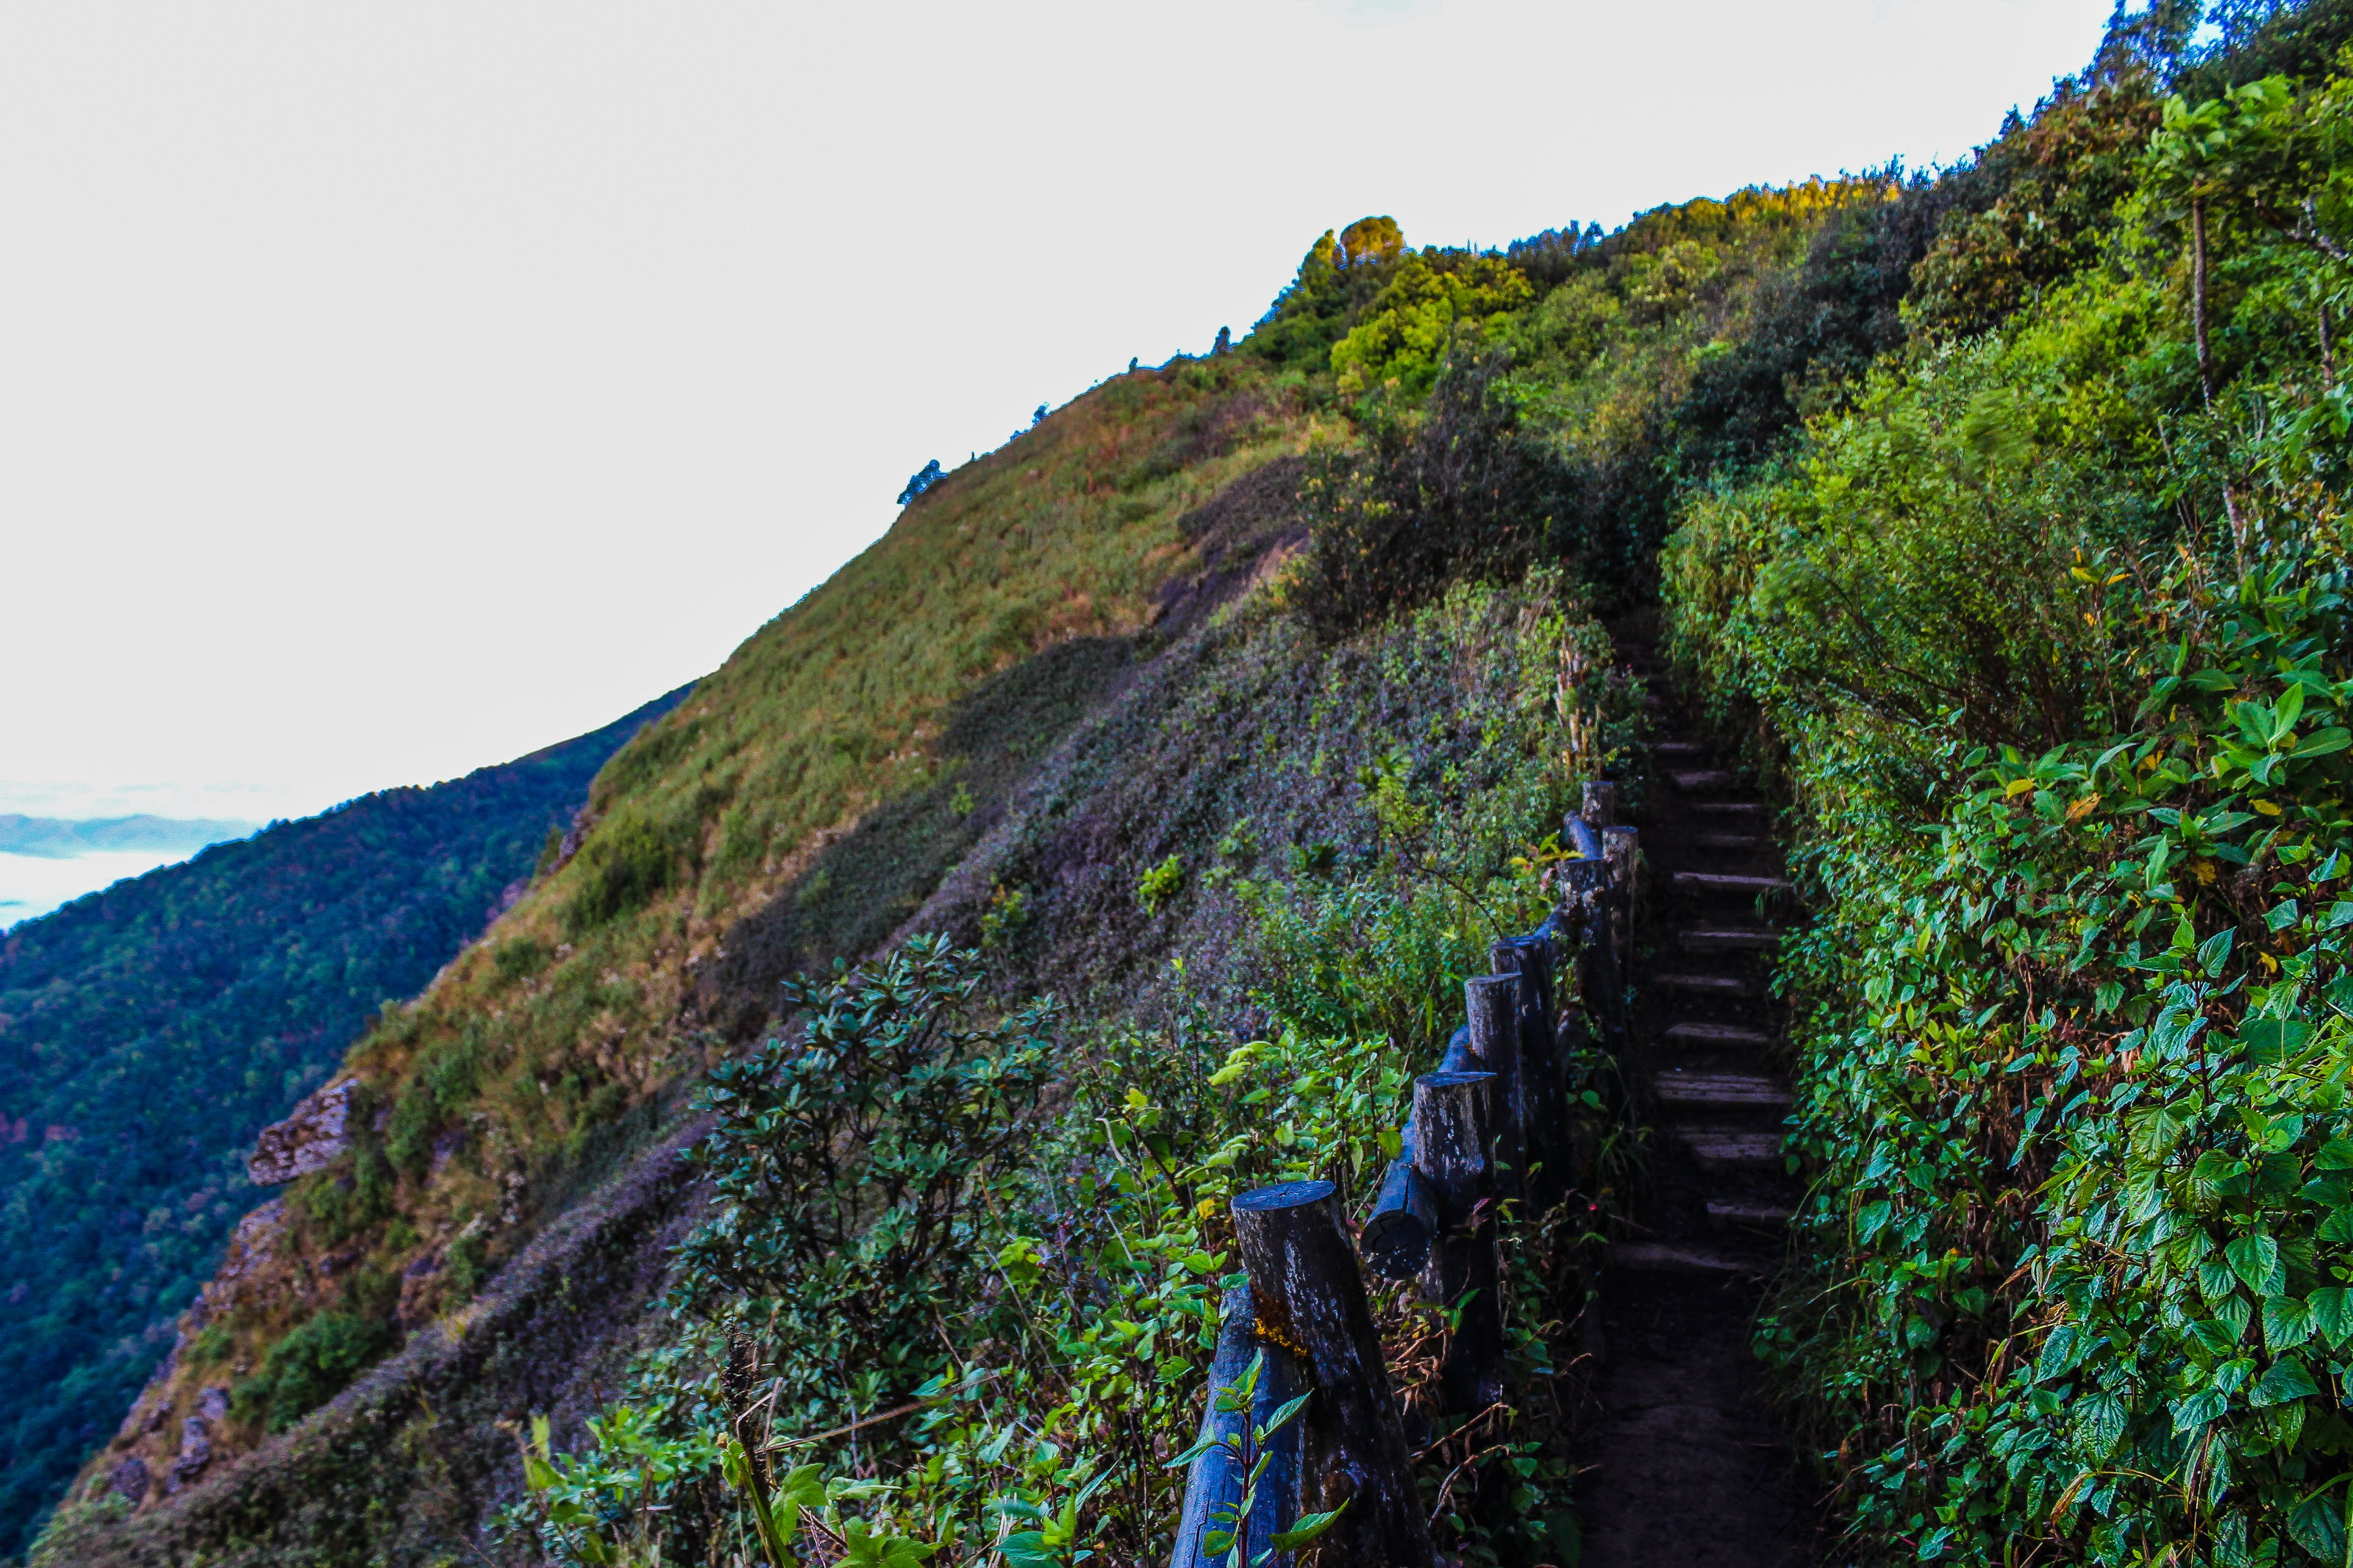 Pathway on Mountain With Blue Wooden Handrails at Daytime